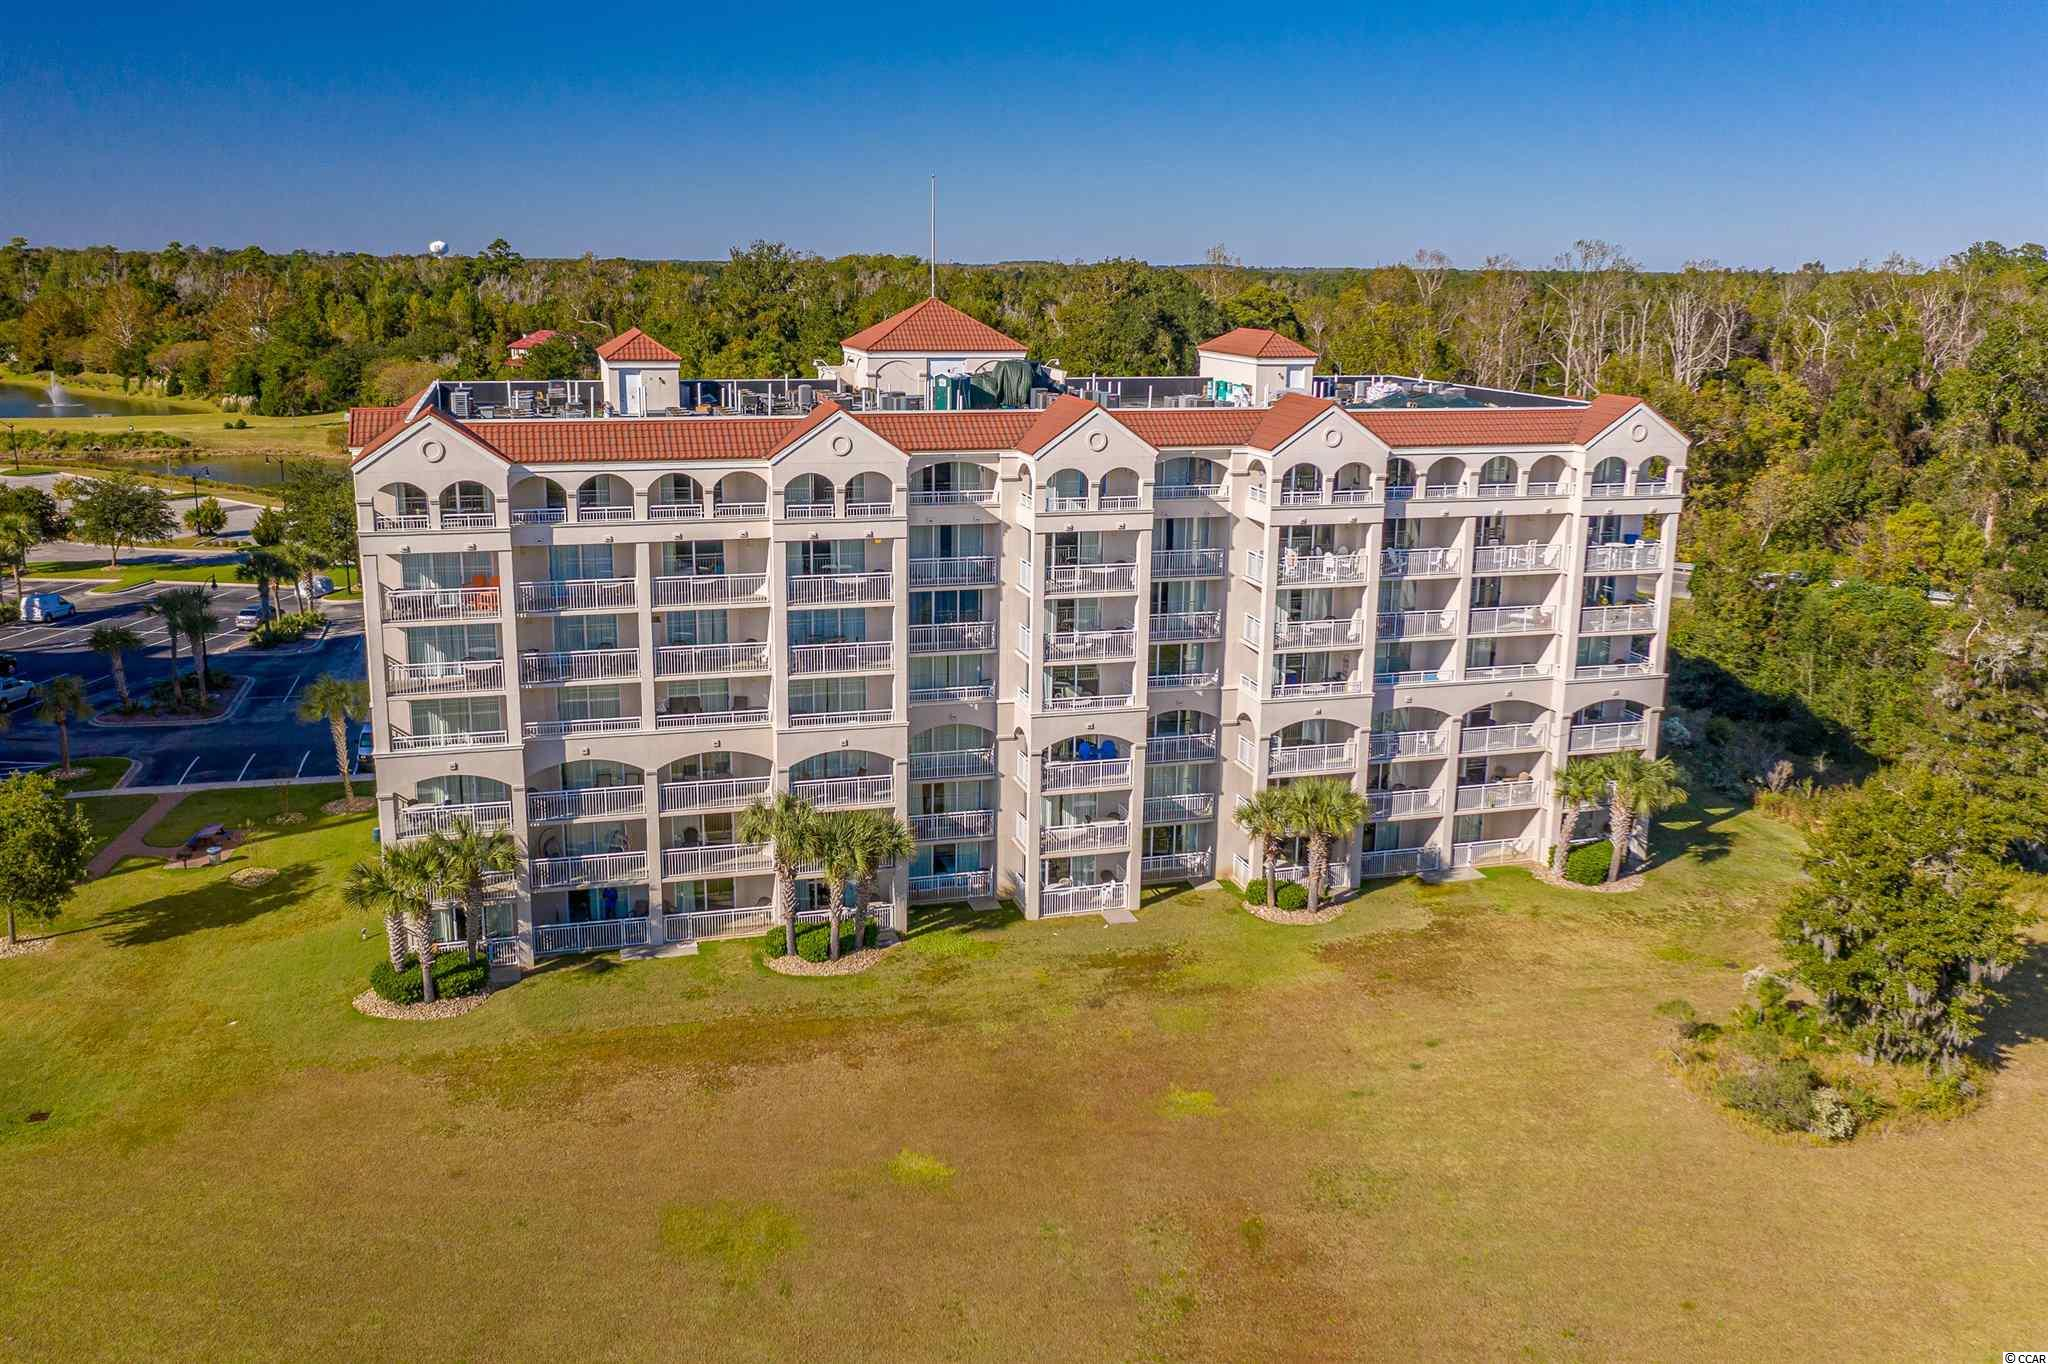 This great 2 bed/2 bath condo with a lock-out feature, is a direct Waterway unit in the Yacht Club Villas @ Barefoot, has great rental potential for investment or perfect for a second home.  This unit is so bright and beautiful that you will want to be here to enjoy this lifestyle as soon as possible!  The unit has granite countertops, stainless appliances, very light and beachy looking furniture, with awesome murals in the bathrooms (more pictures to come).  There are 2 balconies for you to enjoy the great view of the ICW and Barefoot Landing, and watching all the beautiful boats sailing right past your unit.  Yacht Club Villas is located within Barefoot Resort, which includes 4 championship golf courses, awesome driving range, with an adjacent bar and grill, a 15,000 sf pool on the Marina, a convenience store within the property.  Barefoot is located within a short distance to the Atlantic Ocean, with 60 miles of beautiful beaches along the Grand Strand, and near Alabama Theater, House of Blues, great shopping and dining.  Come and enjoy the Barefoot lifestyle, you will be glad you did.